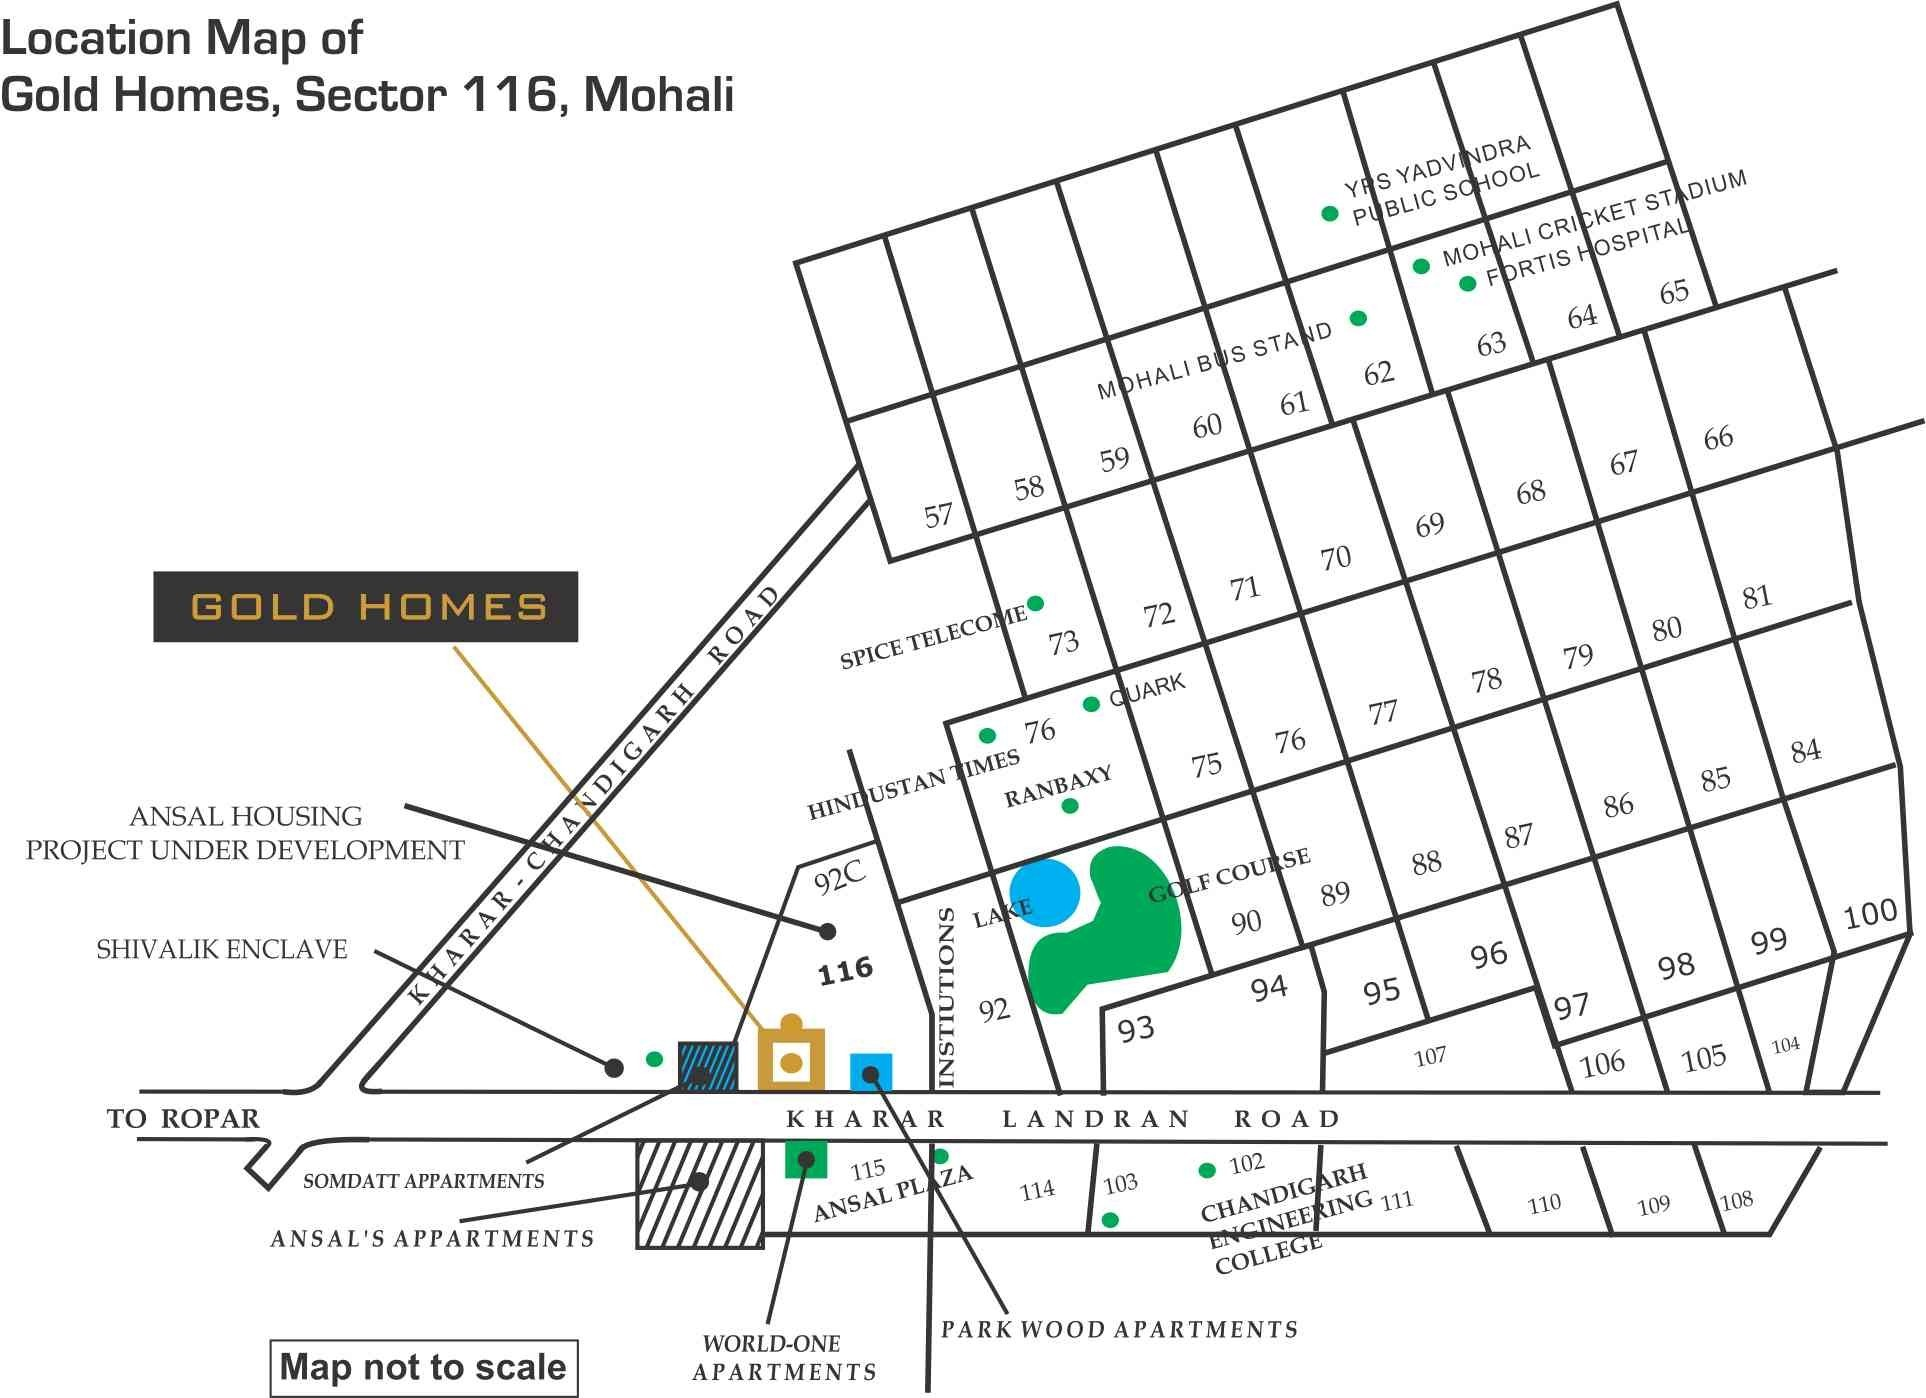 location map of gold homes sector 116 mohali